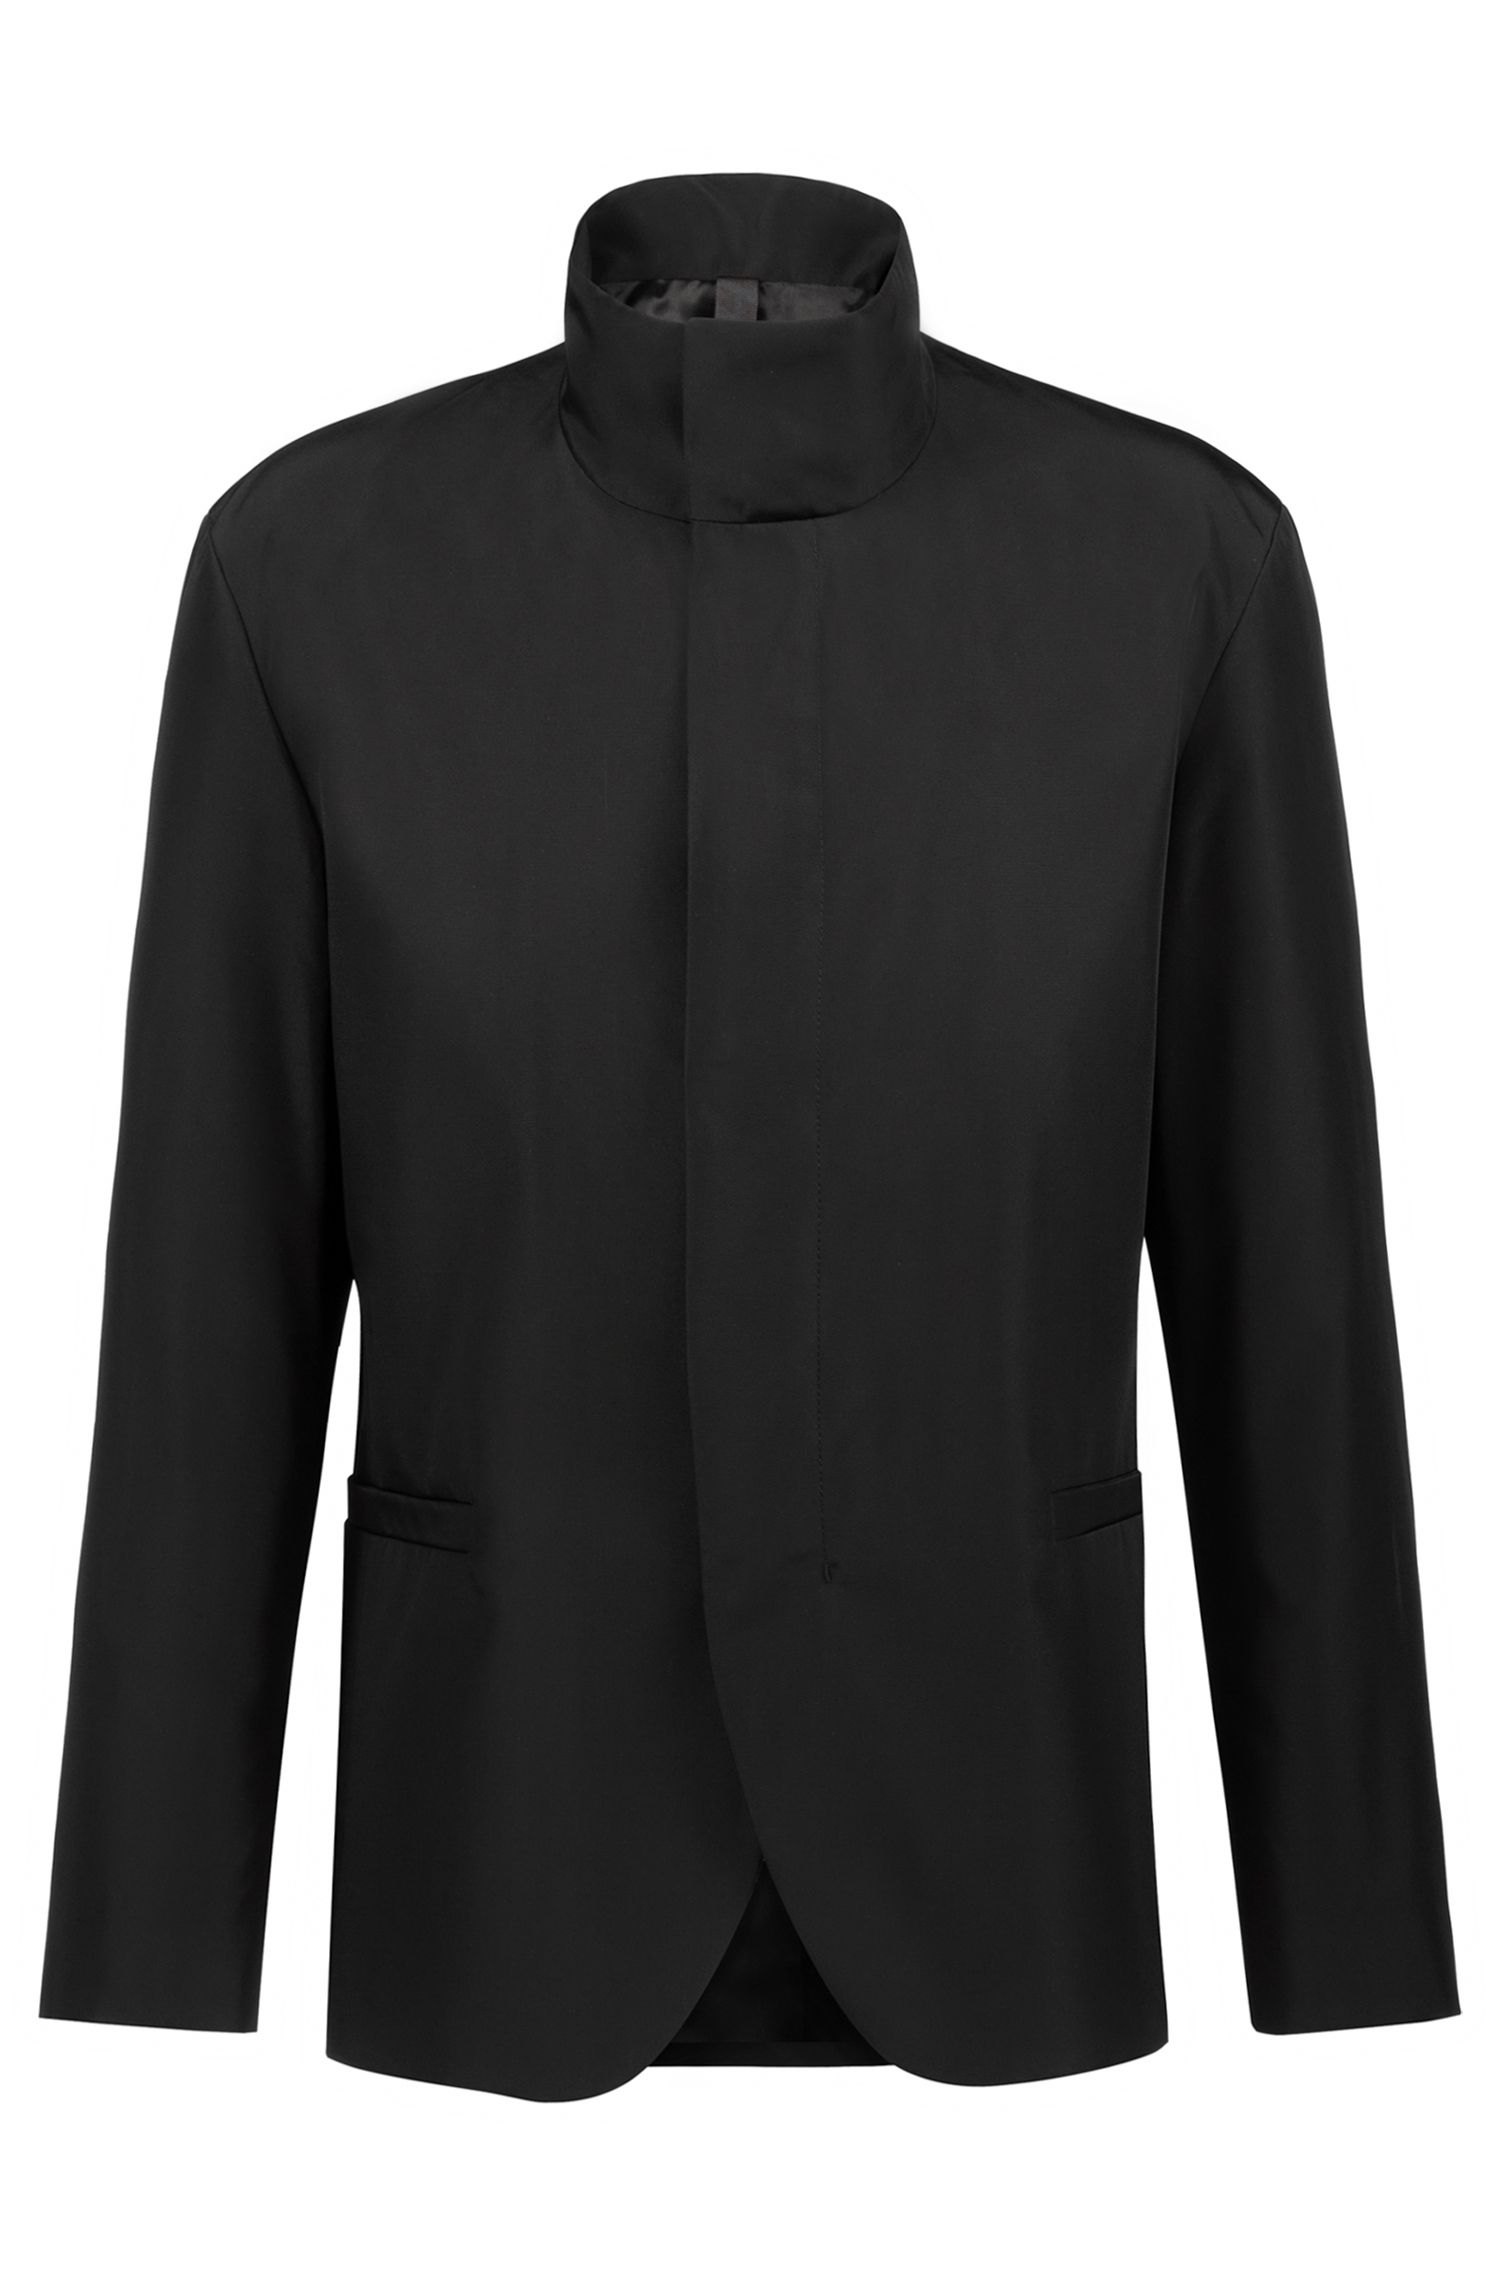 Veste Slim Fit à col montant de la collection capsule Bits & Bytes, Noir